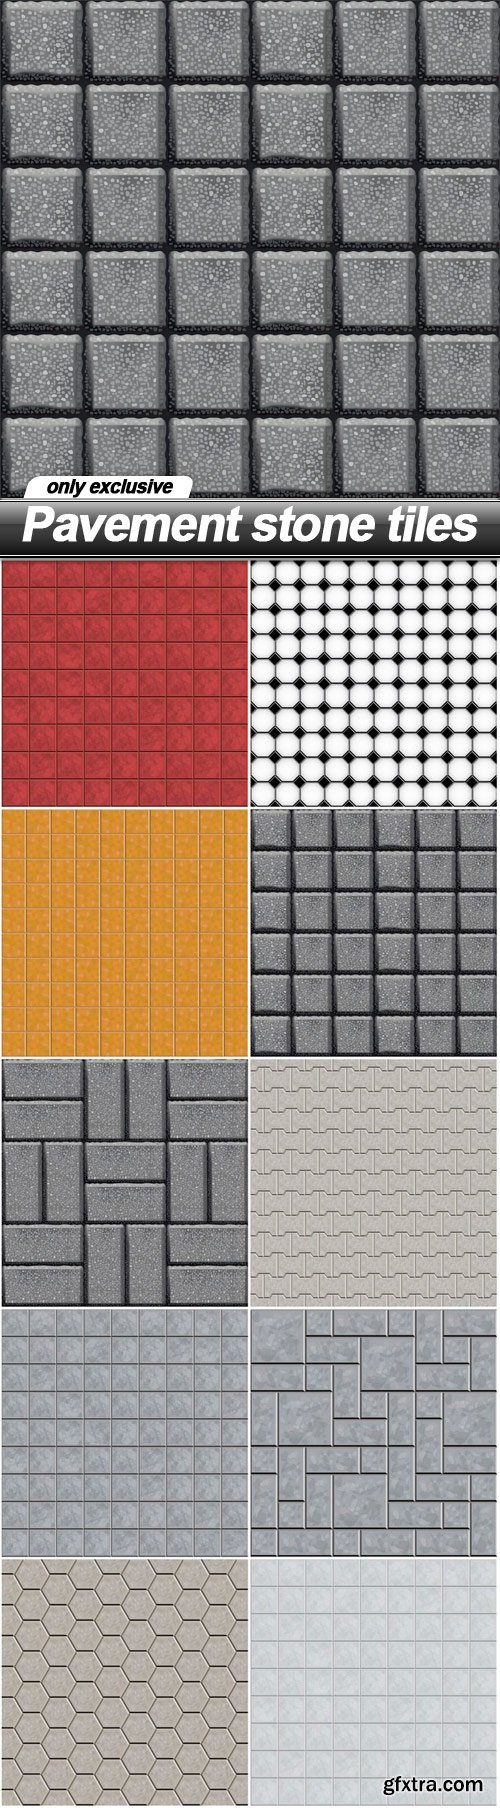 Pavement stone tiles - 10 EPS